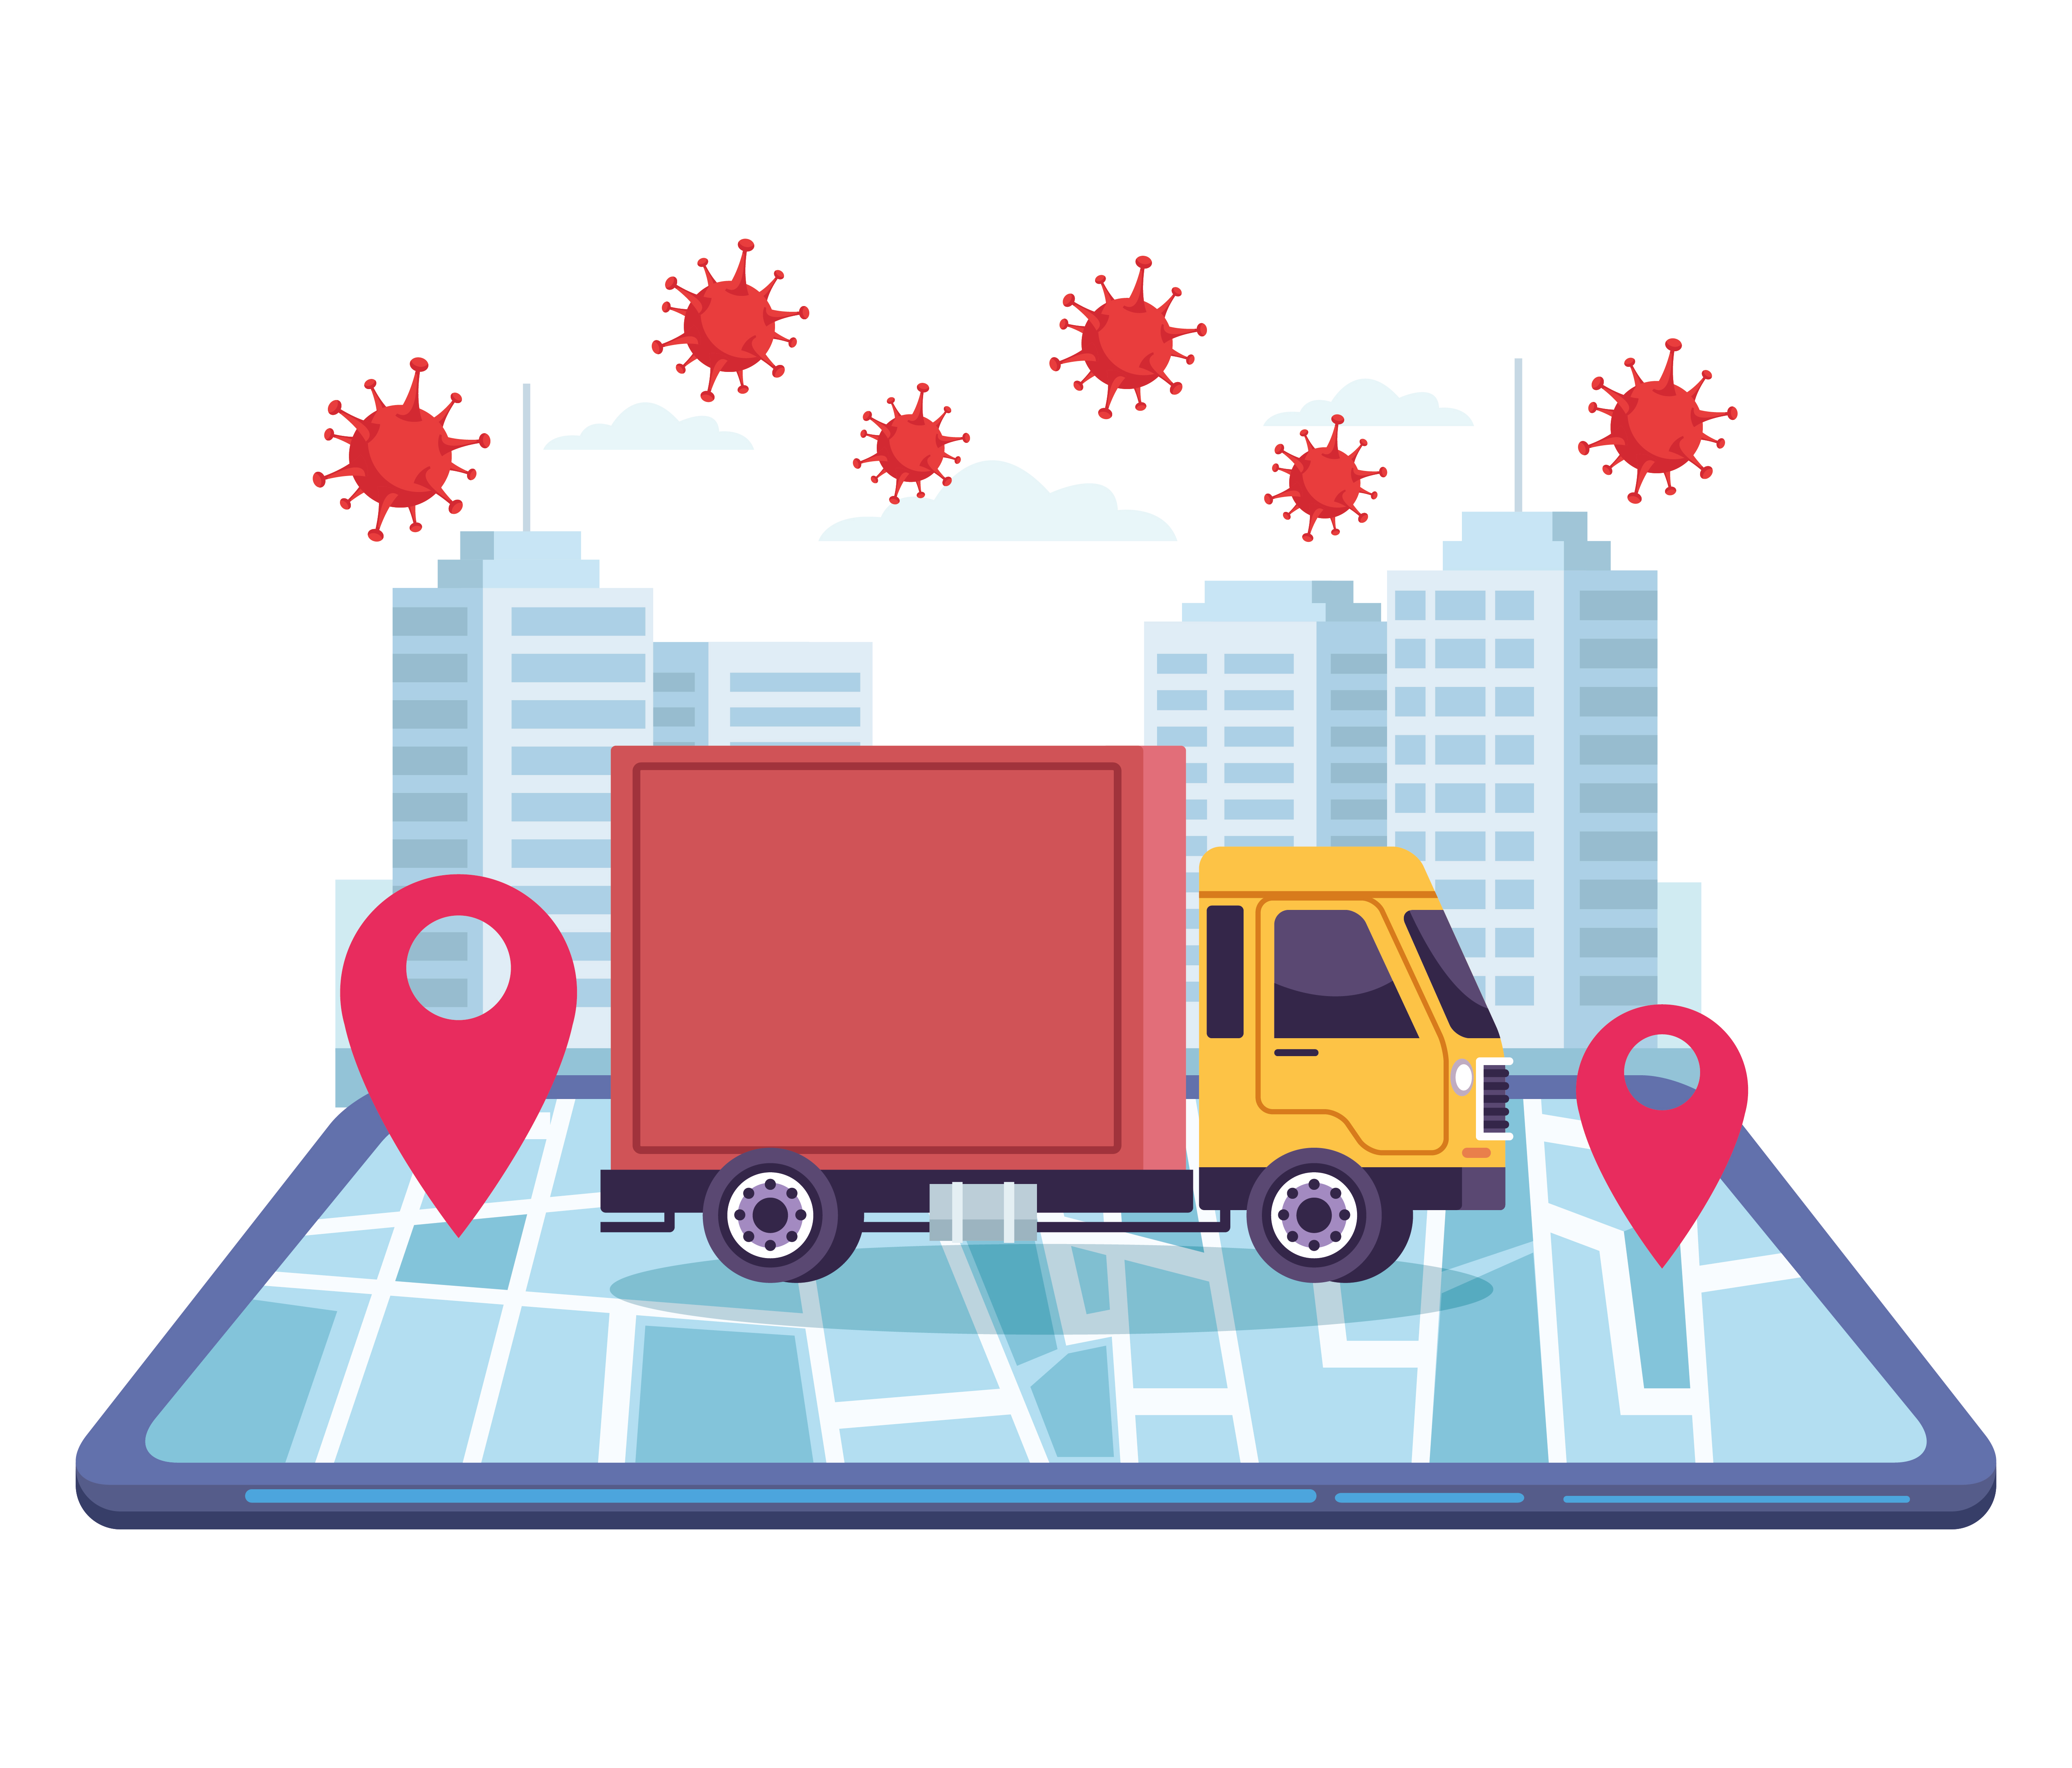 Truck vehicle delivery online service with COVID 19 particles